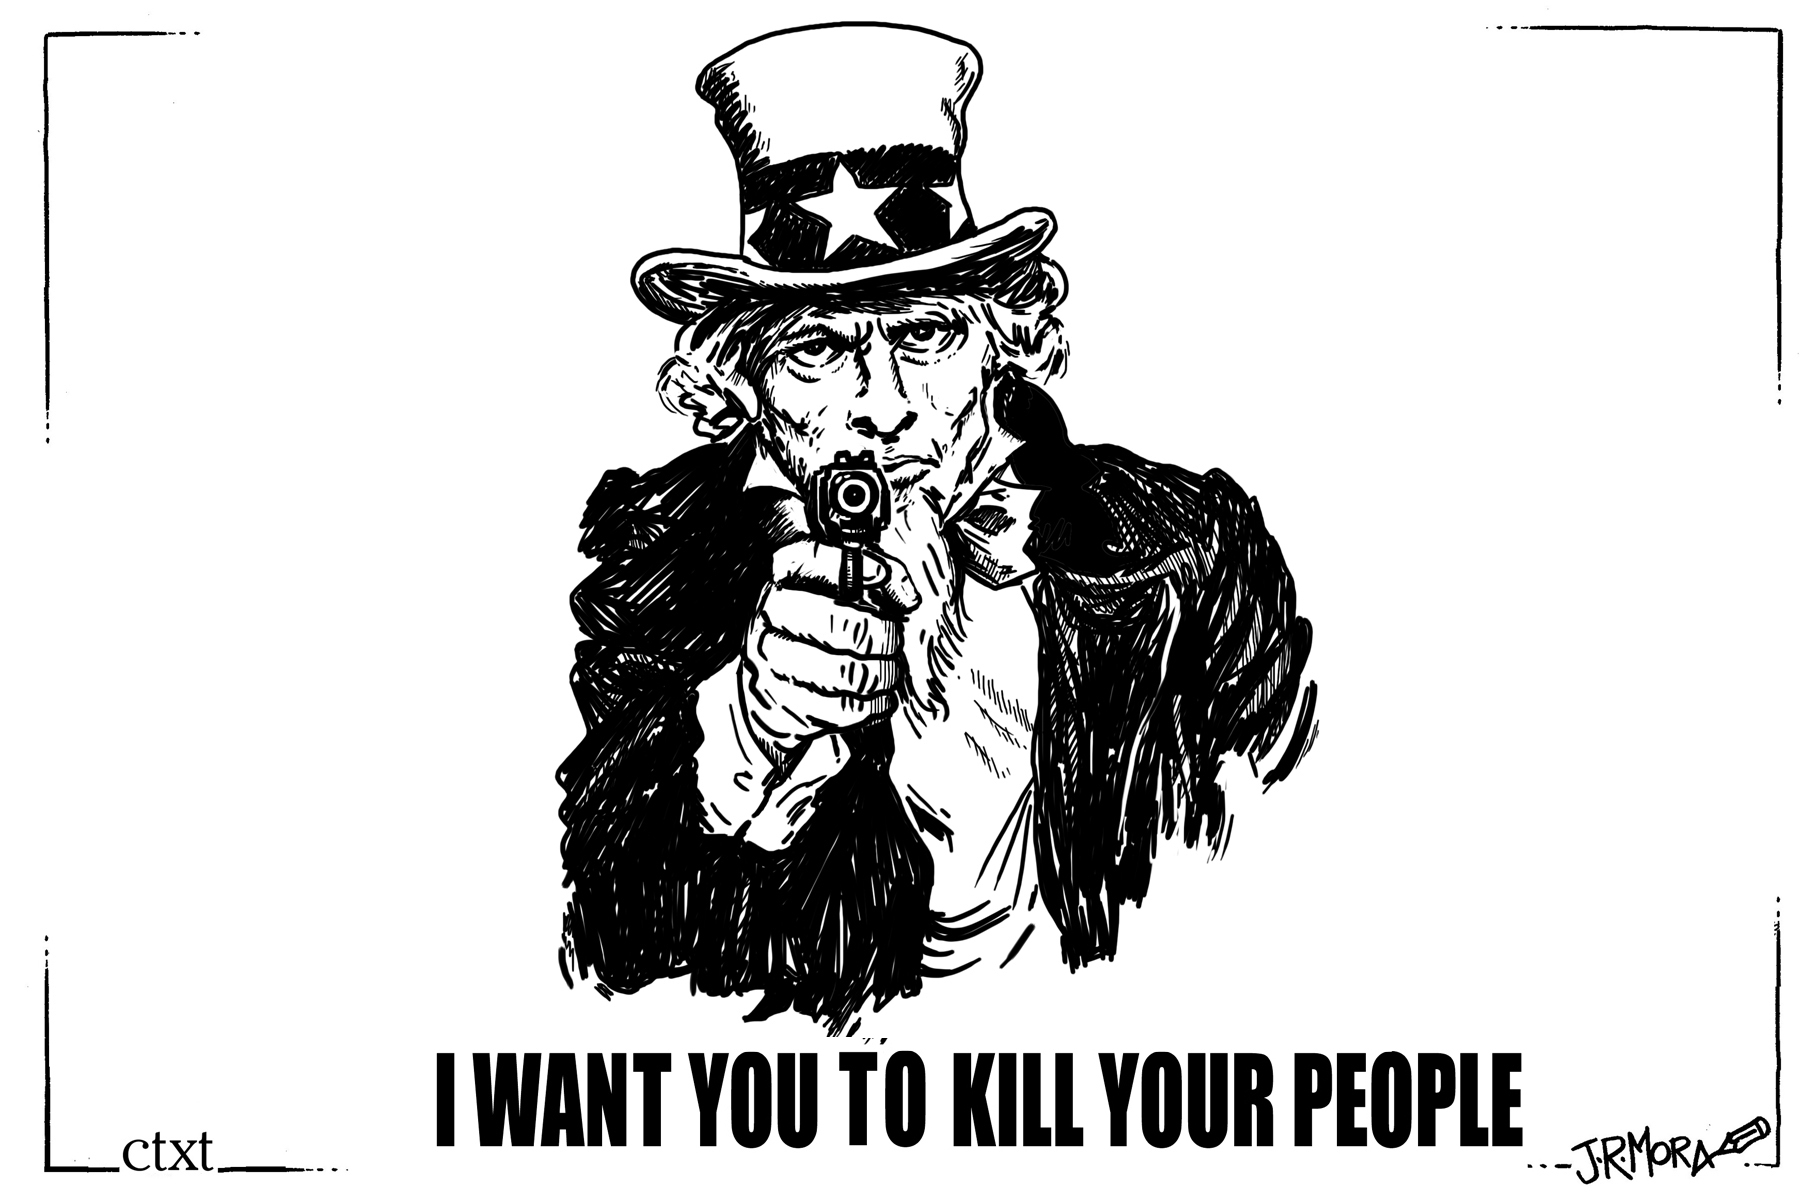 <p>I want you to kill your people.</p>